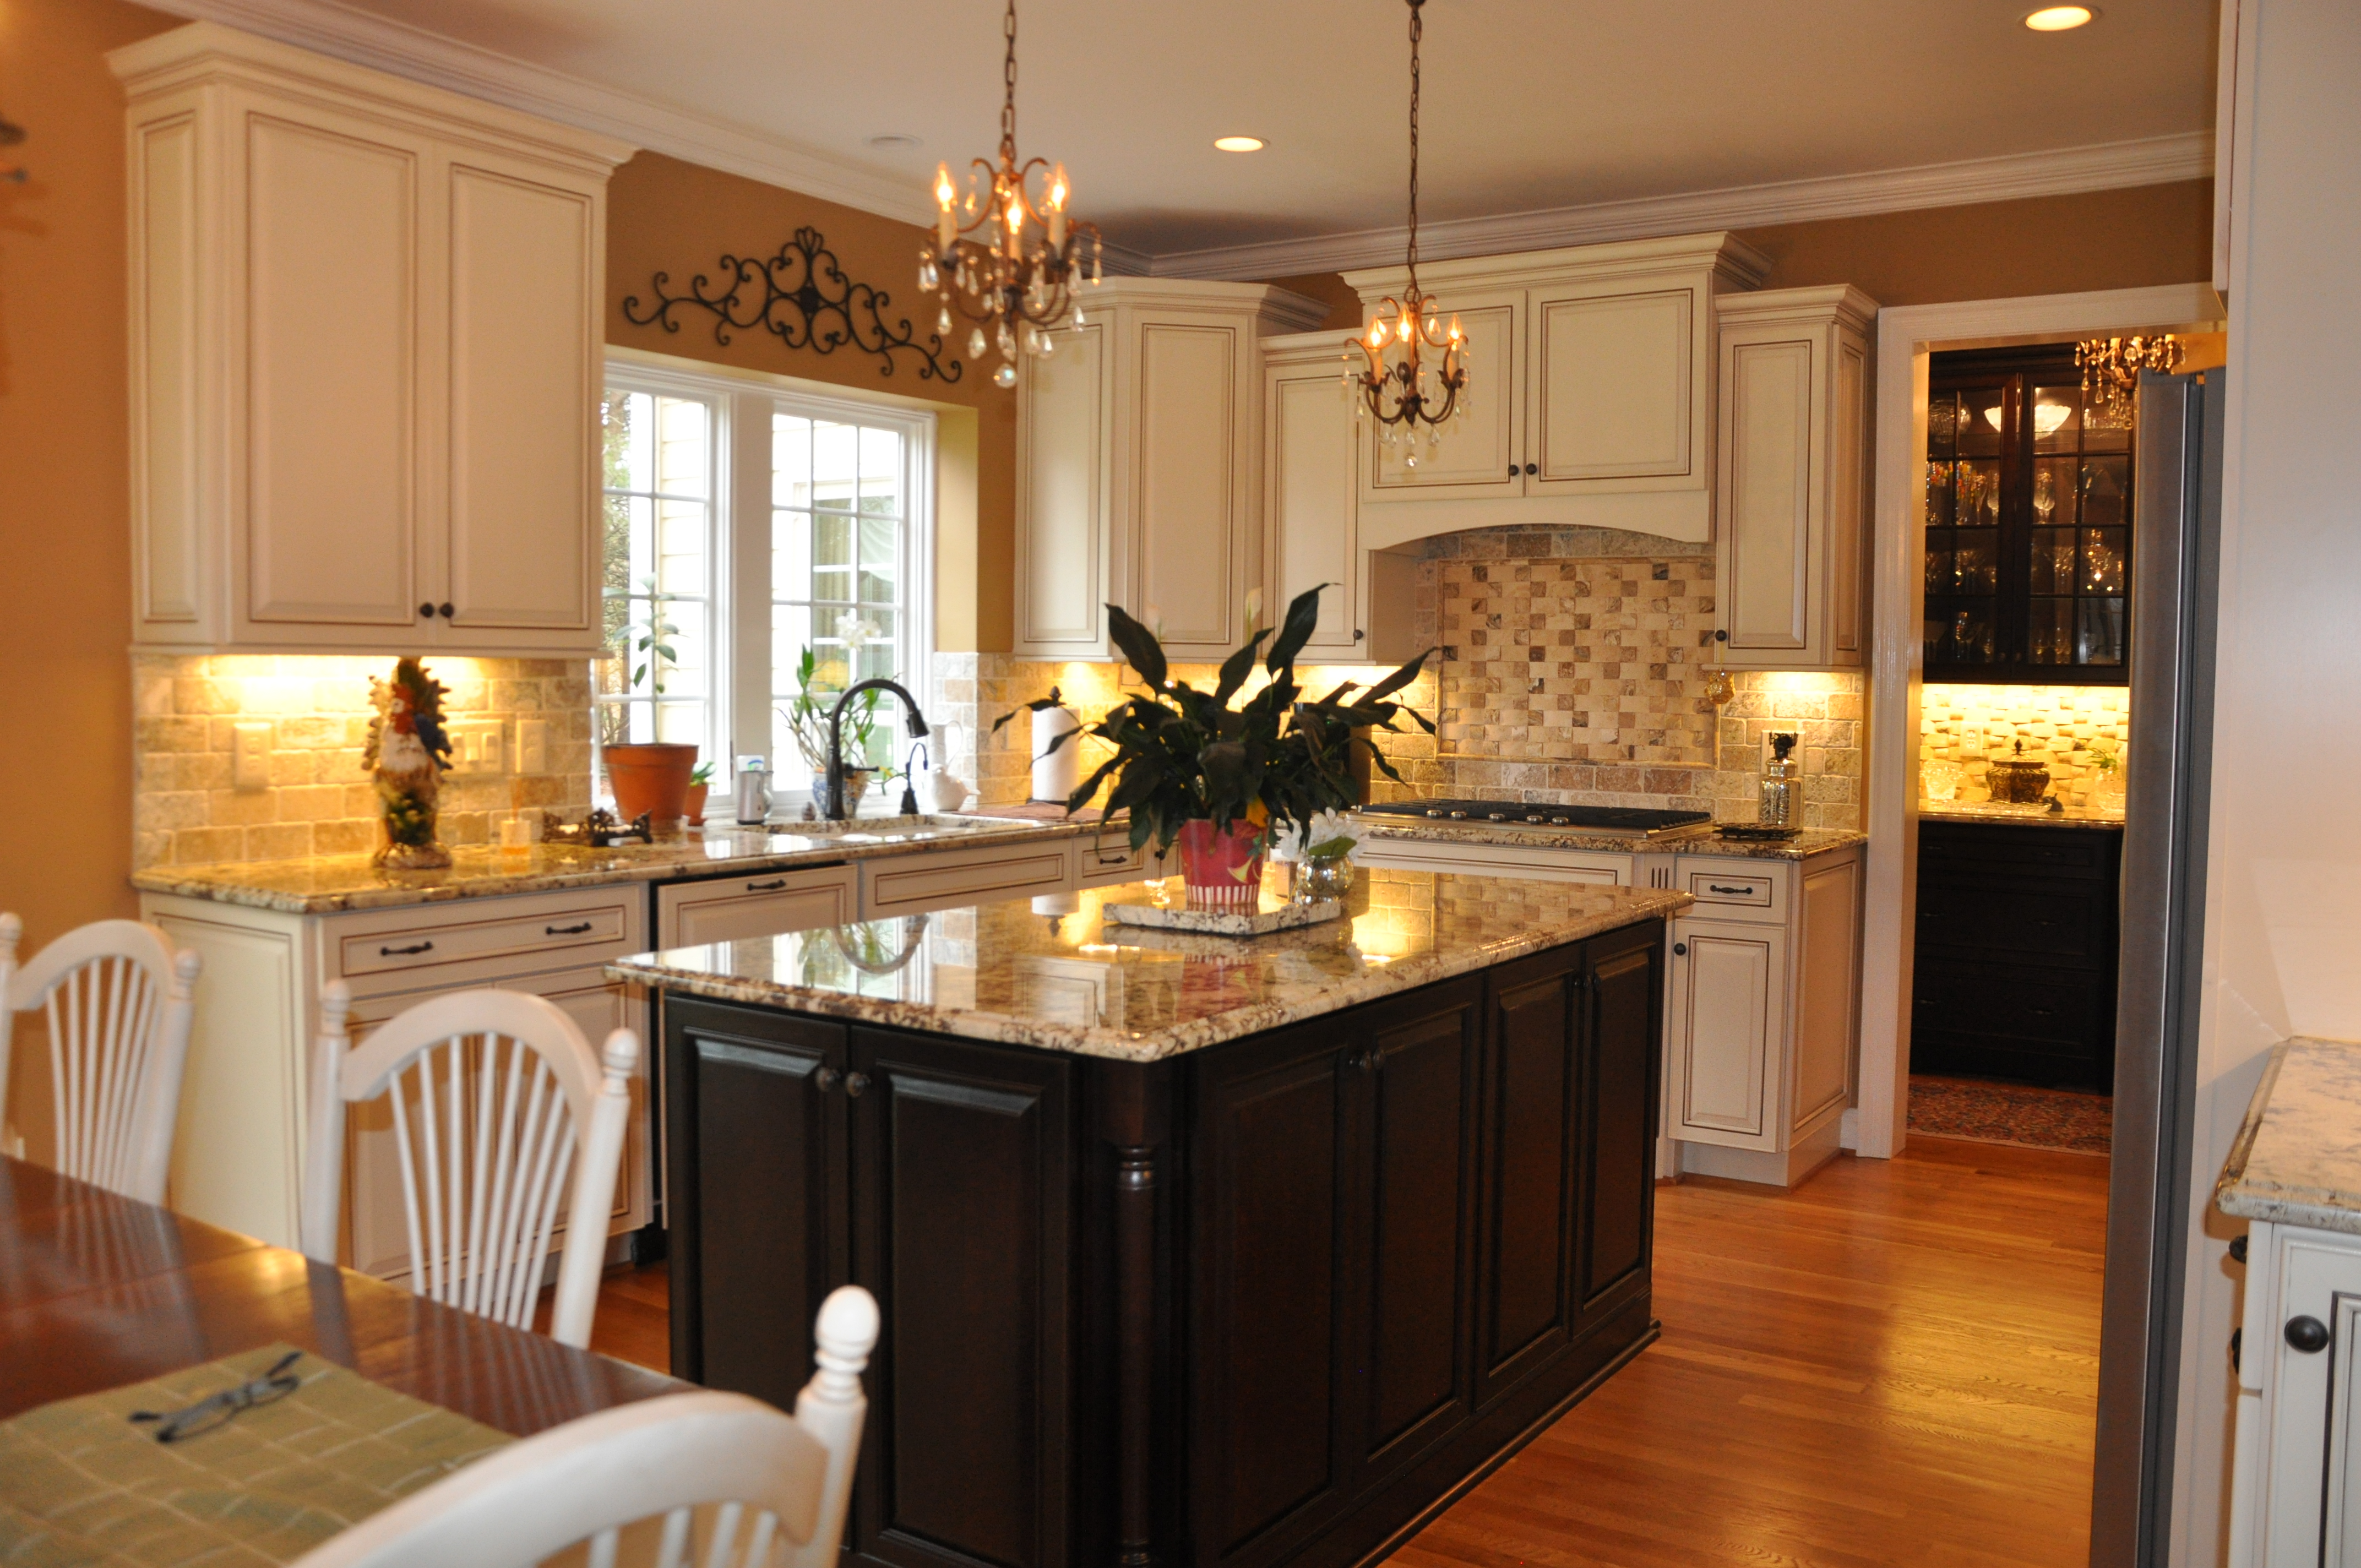 Kitchen Island With Different Countertop Coordinating Granite Or Quartz Countertops With Cabinets